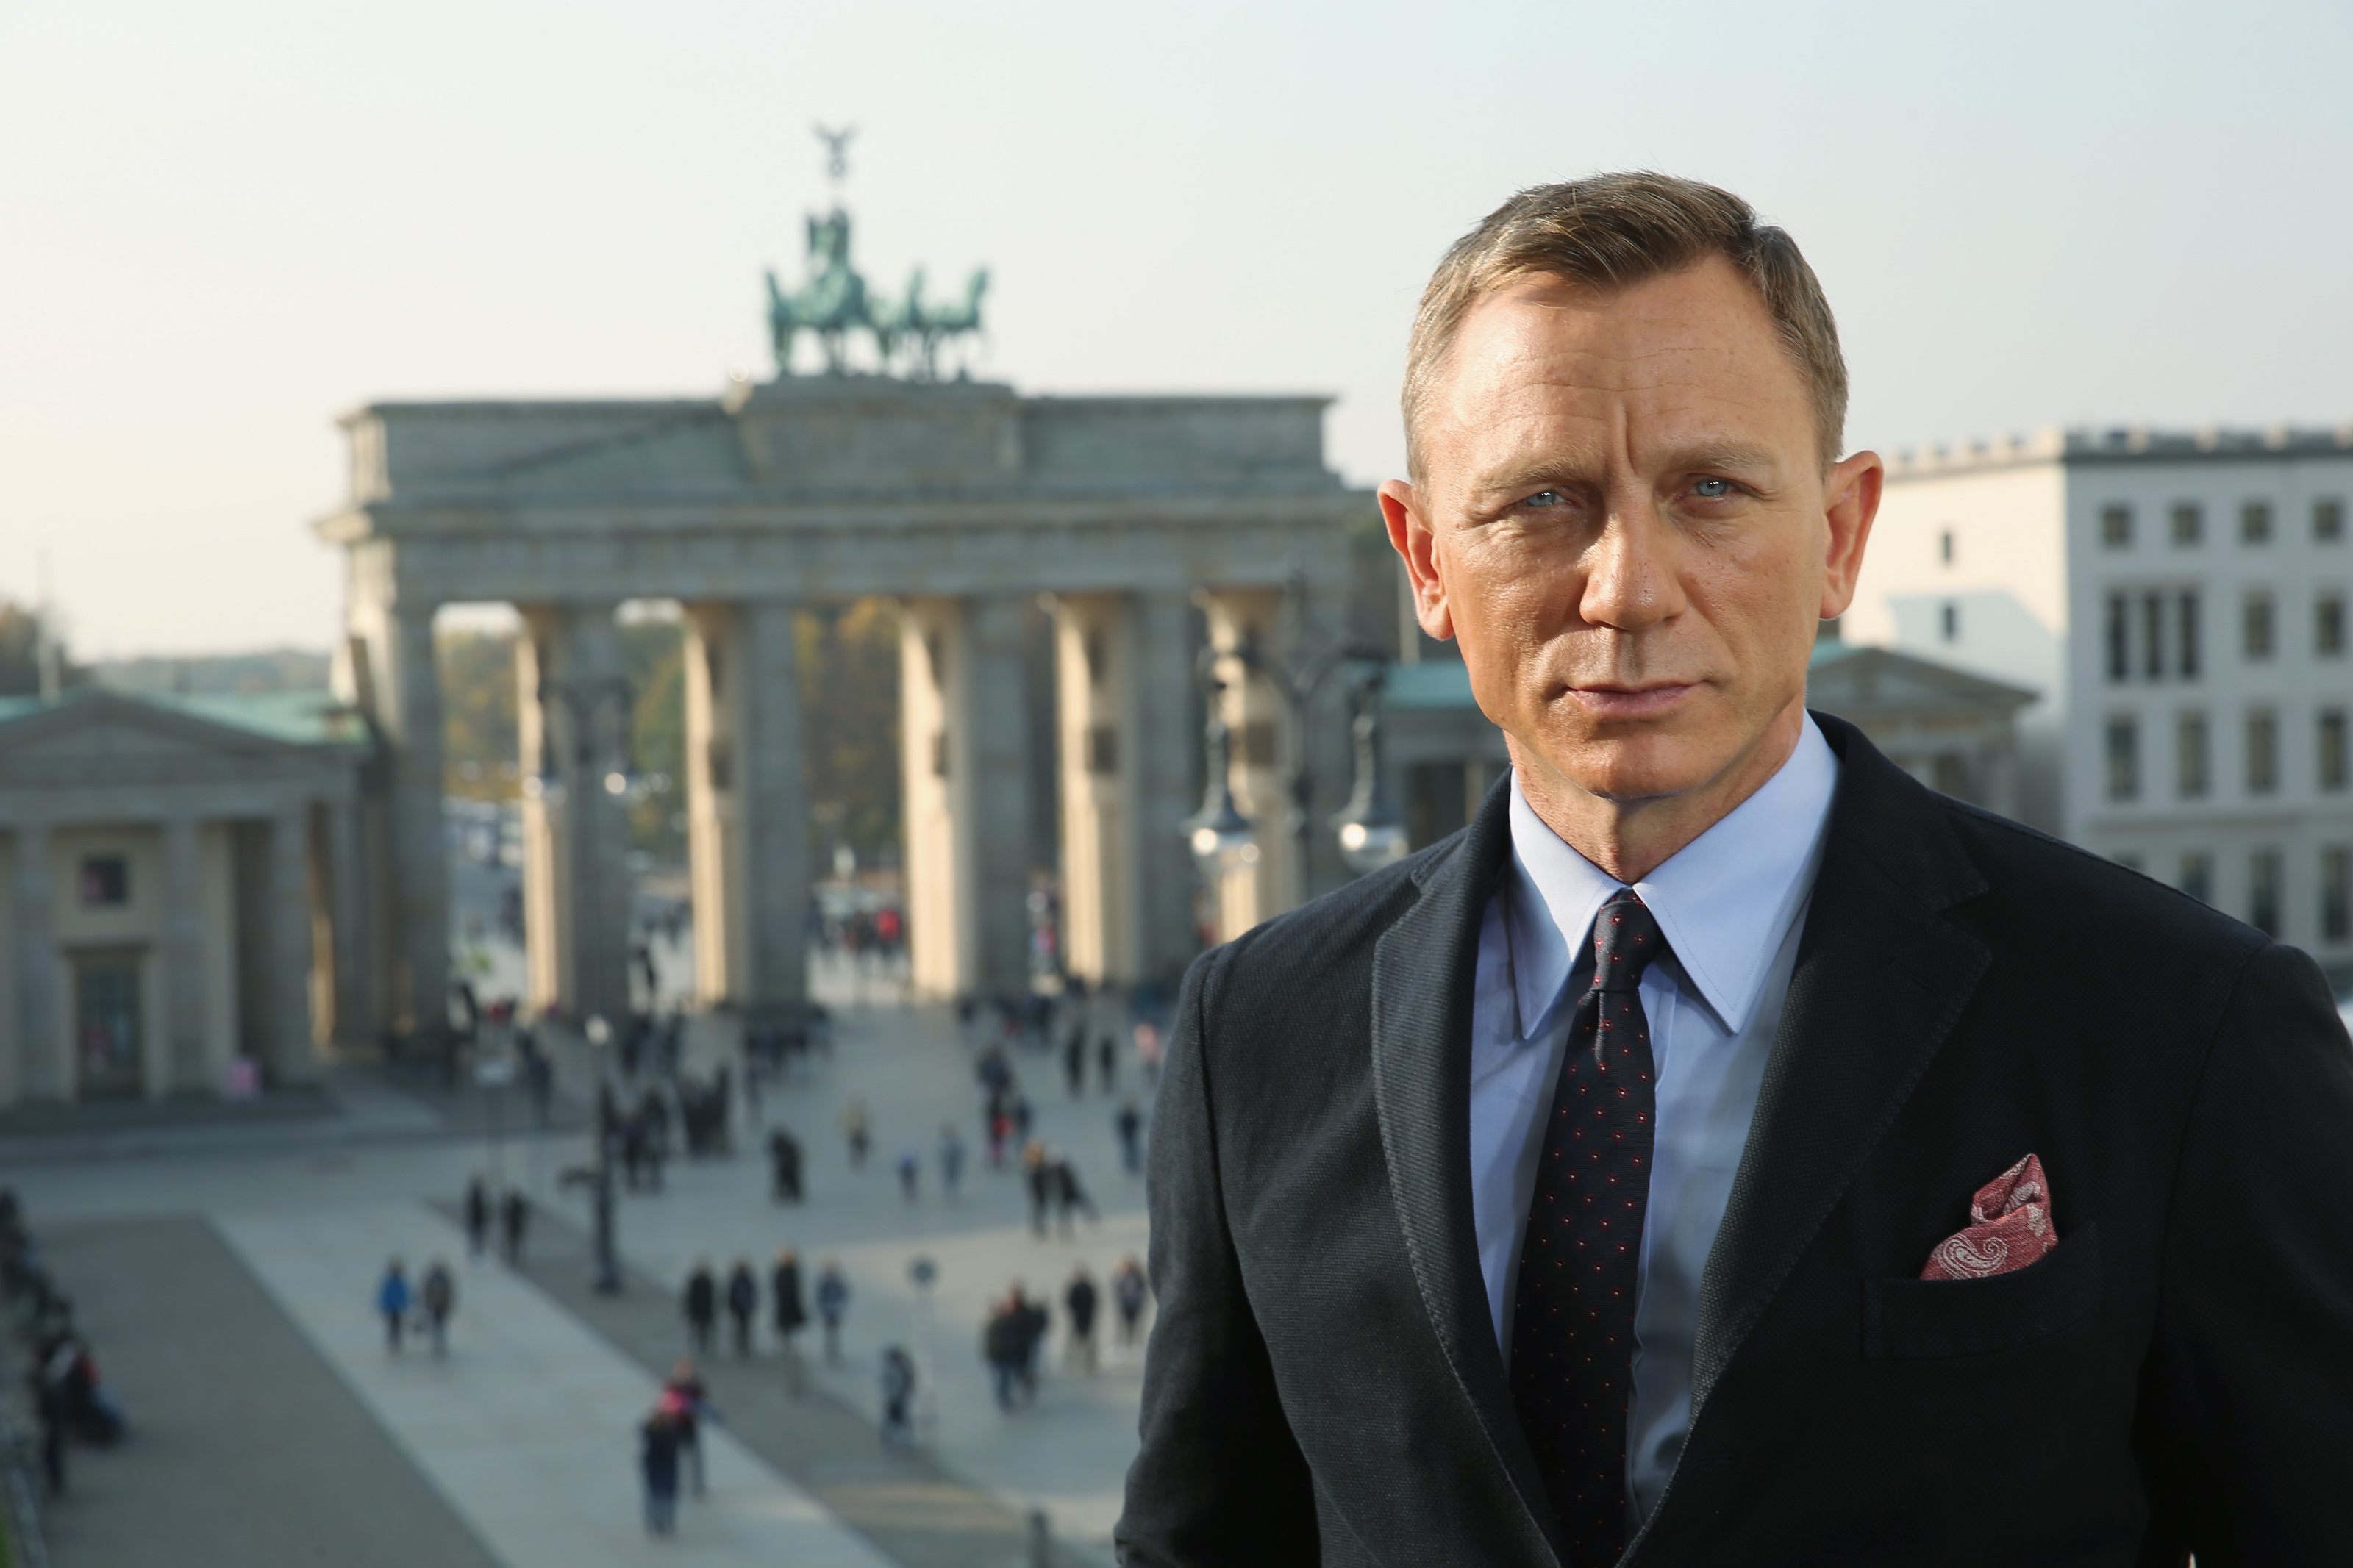 No Time To Die? More like all the time, because it'll be the longest Bond movie yet